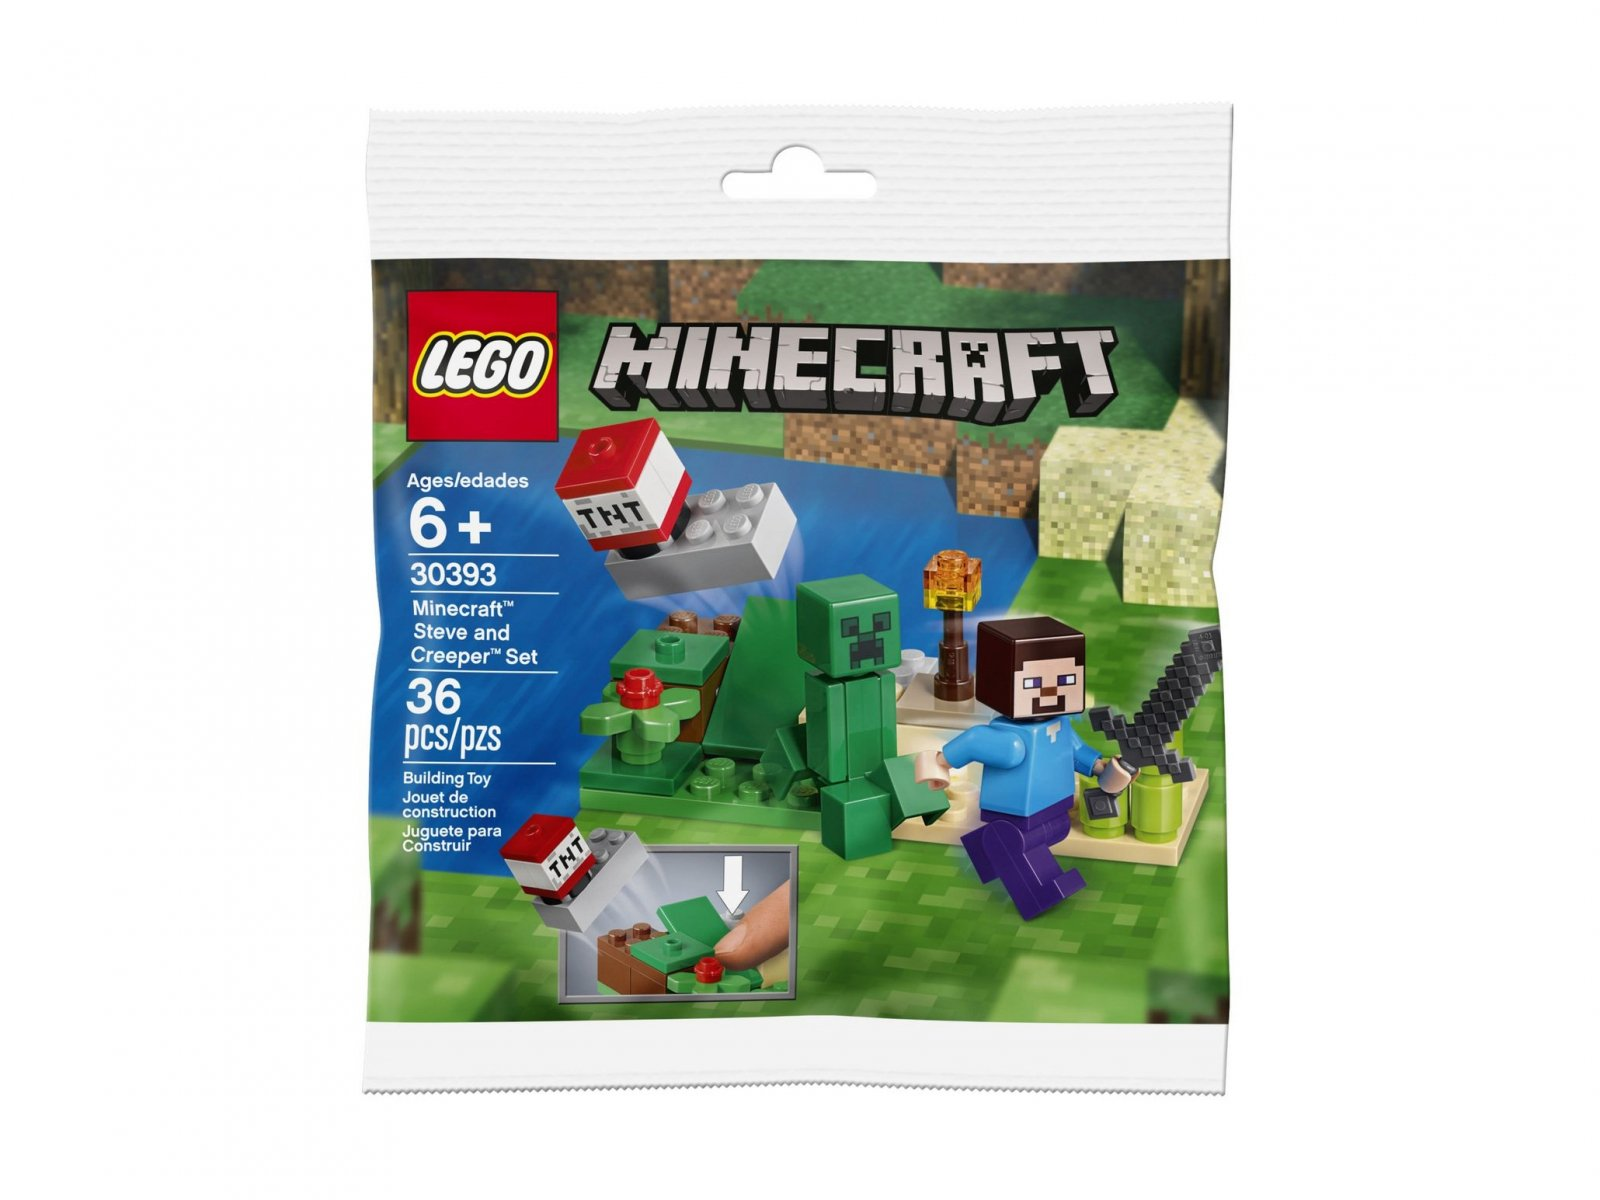 LEGO Minecraft™ 30393 Steve and Creeper™ Set